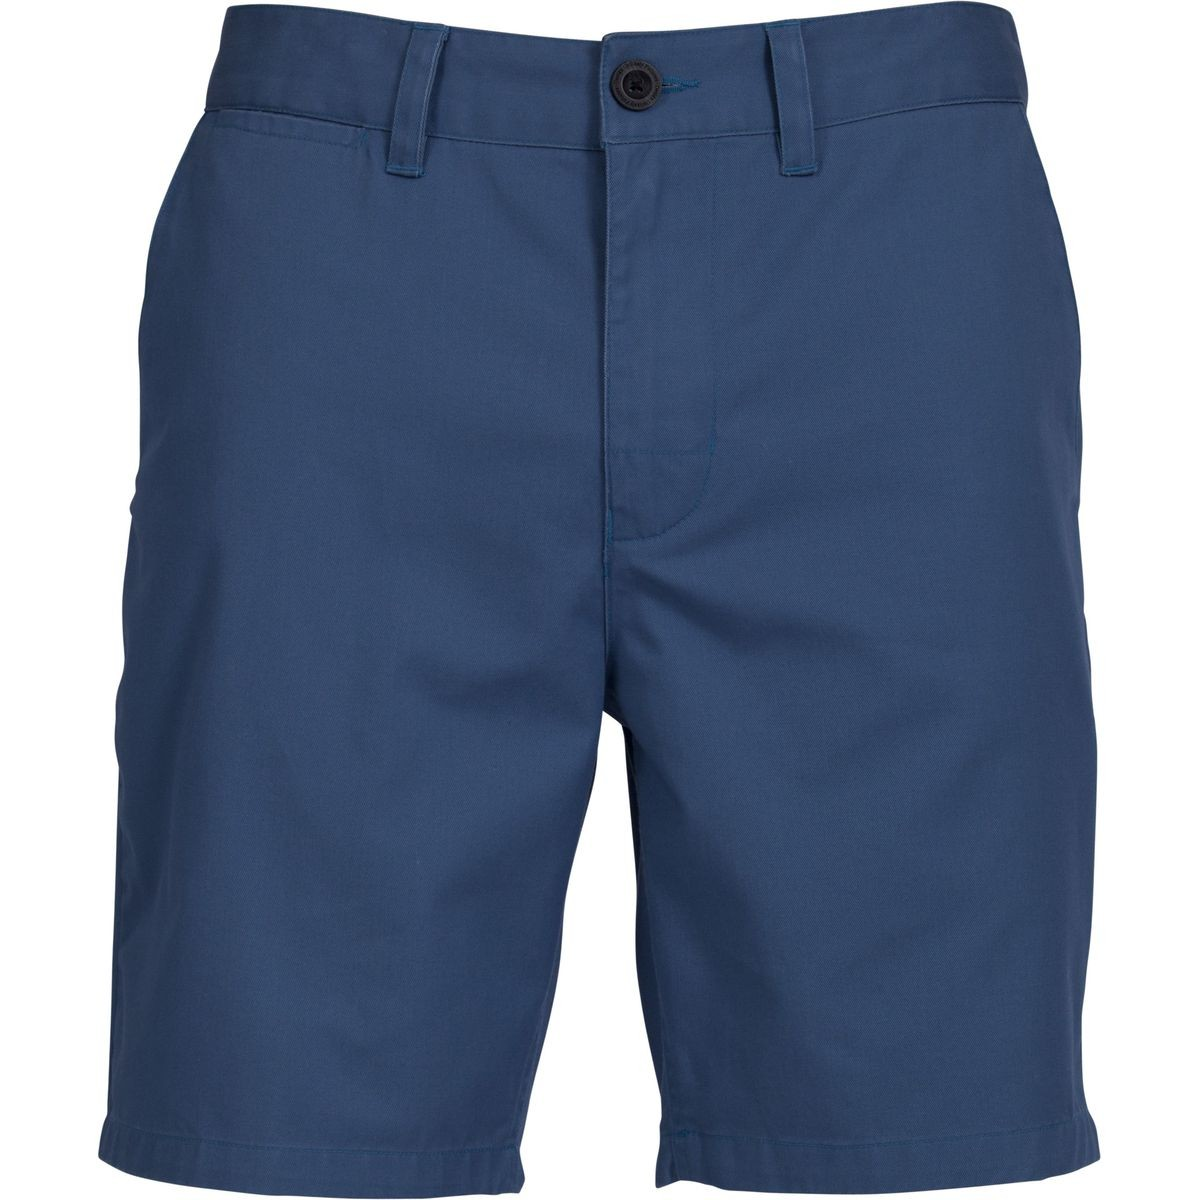 "Analog AG Chino Shorts 19"" - Sky Blue"